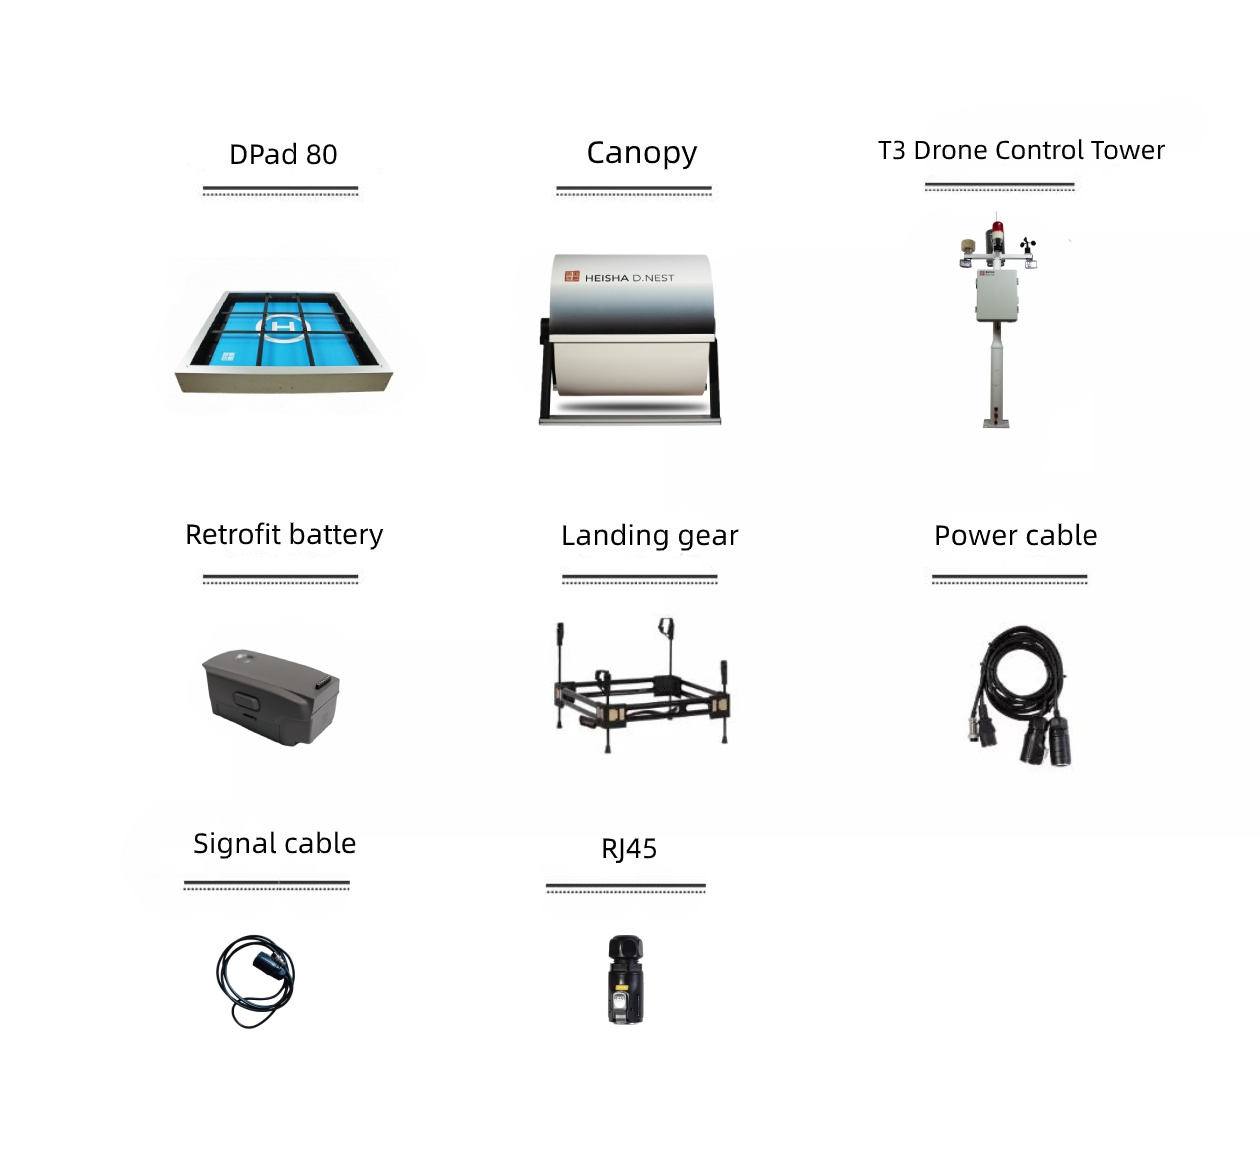 packing list of D80 drone dock